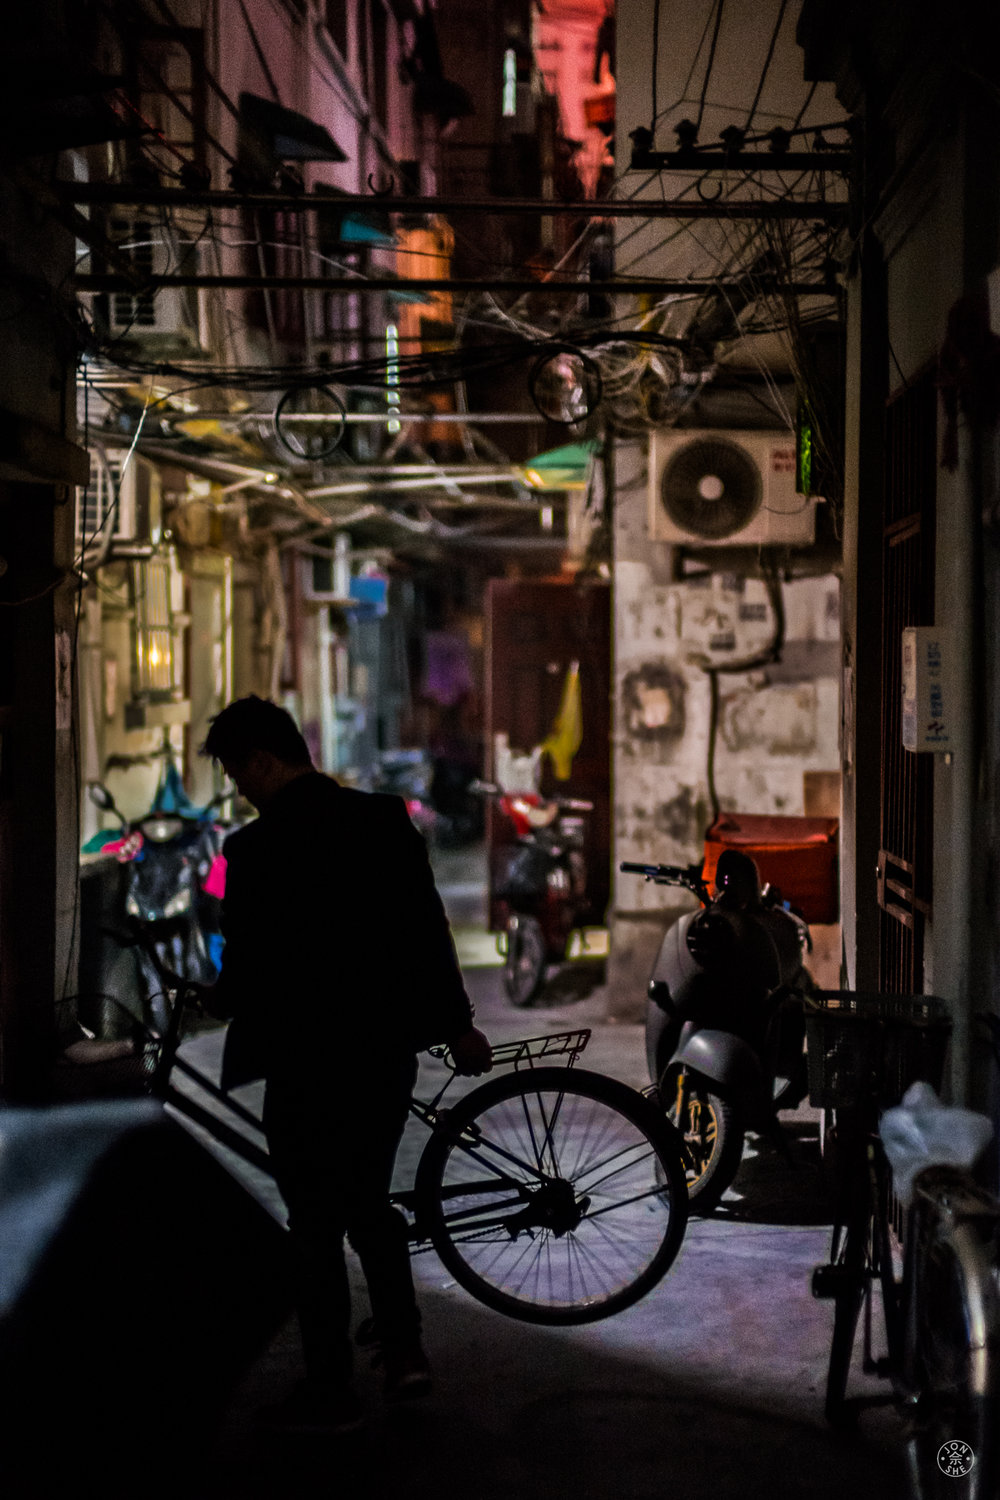 """Arriving Home"".  A young man gets back home late at night on his bicycle, in a back alley in Shanghai. Hundreds of thousands of the city's residents still live in congested and relatively undeveloped back alley communities like this one, often just around the corner from a modern road or skyscraper. Shanghai, China. May, 2016. © Jon She. Leica SL (Typ 601), Leica Noctilux-M 50mm ASPH."